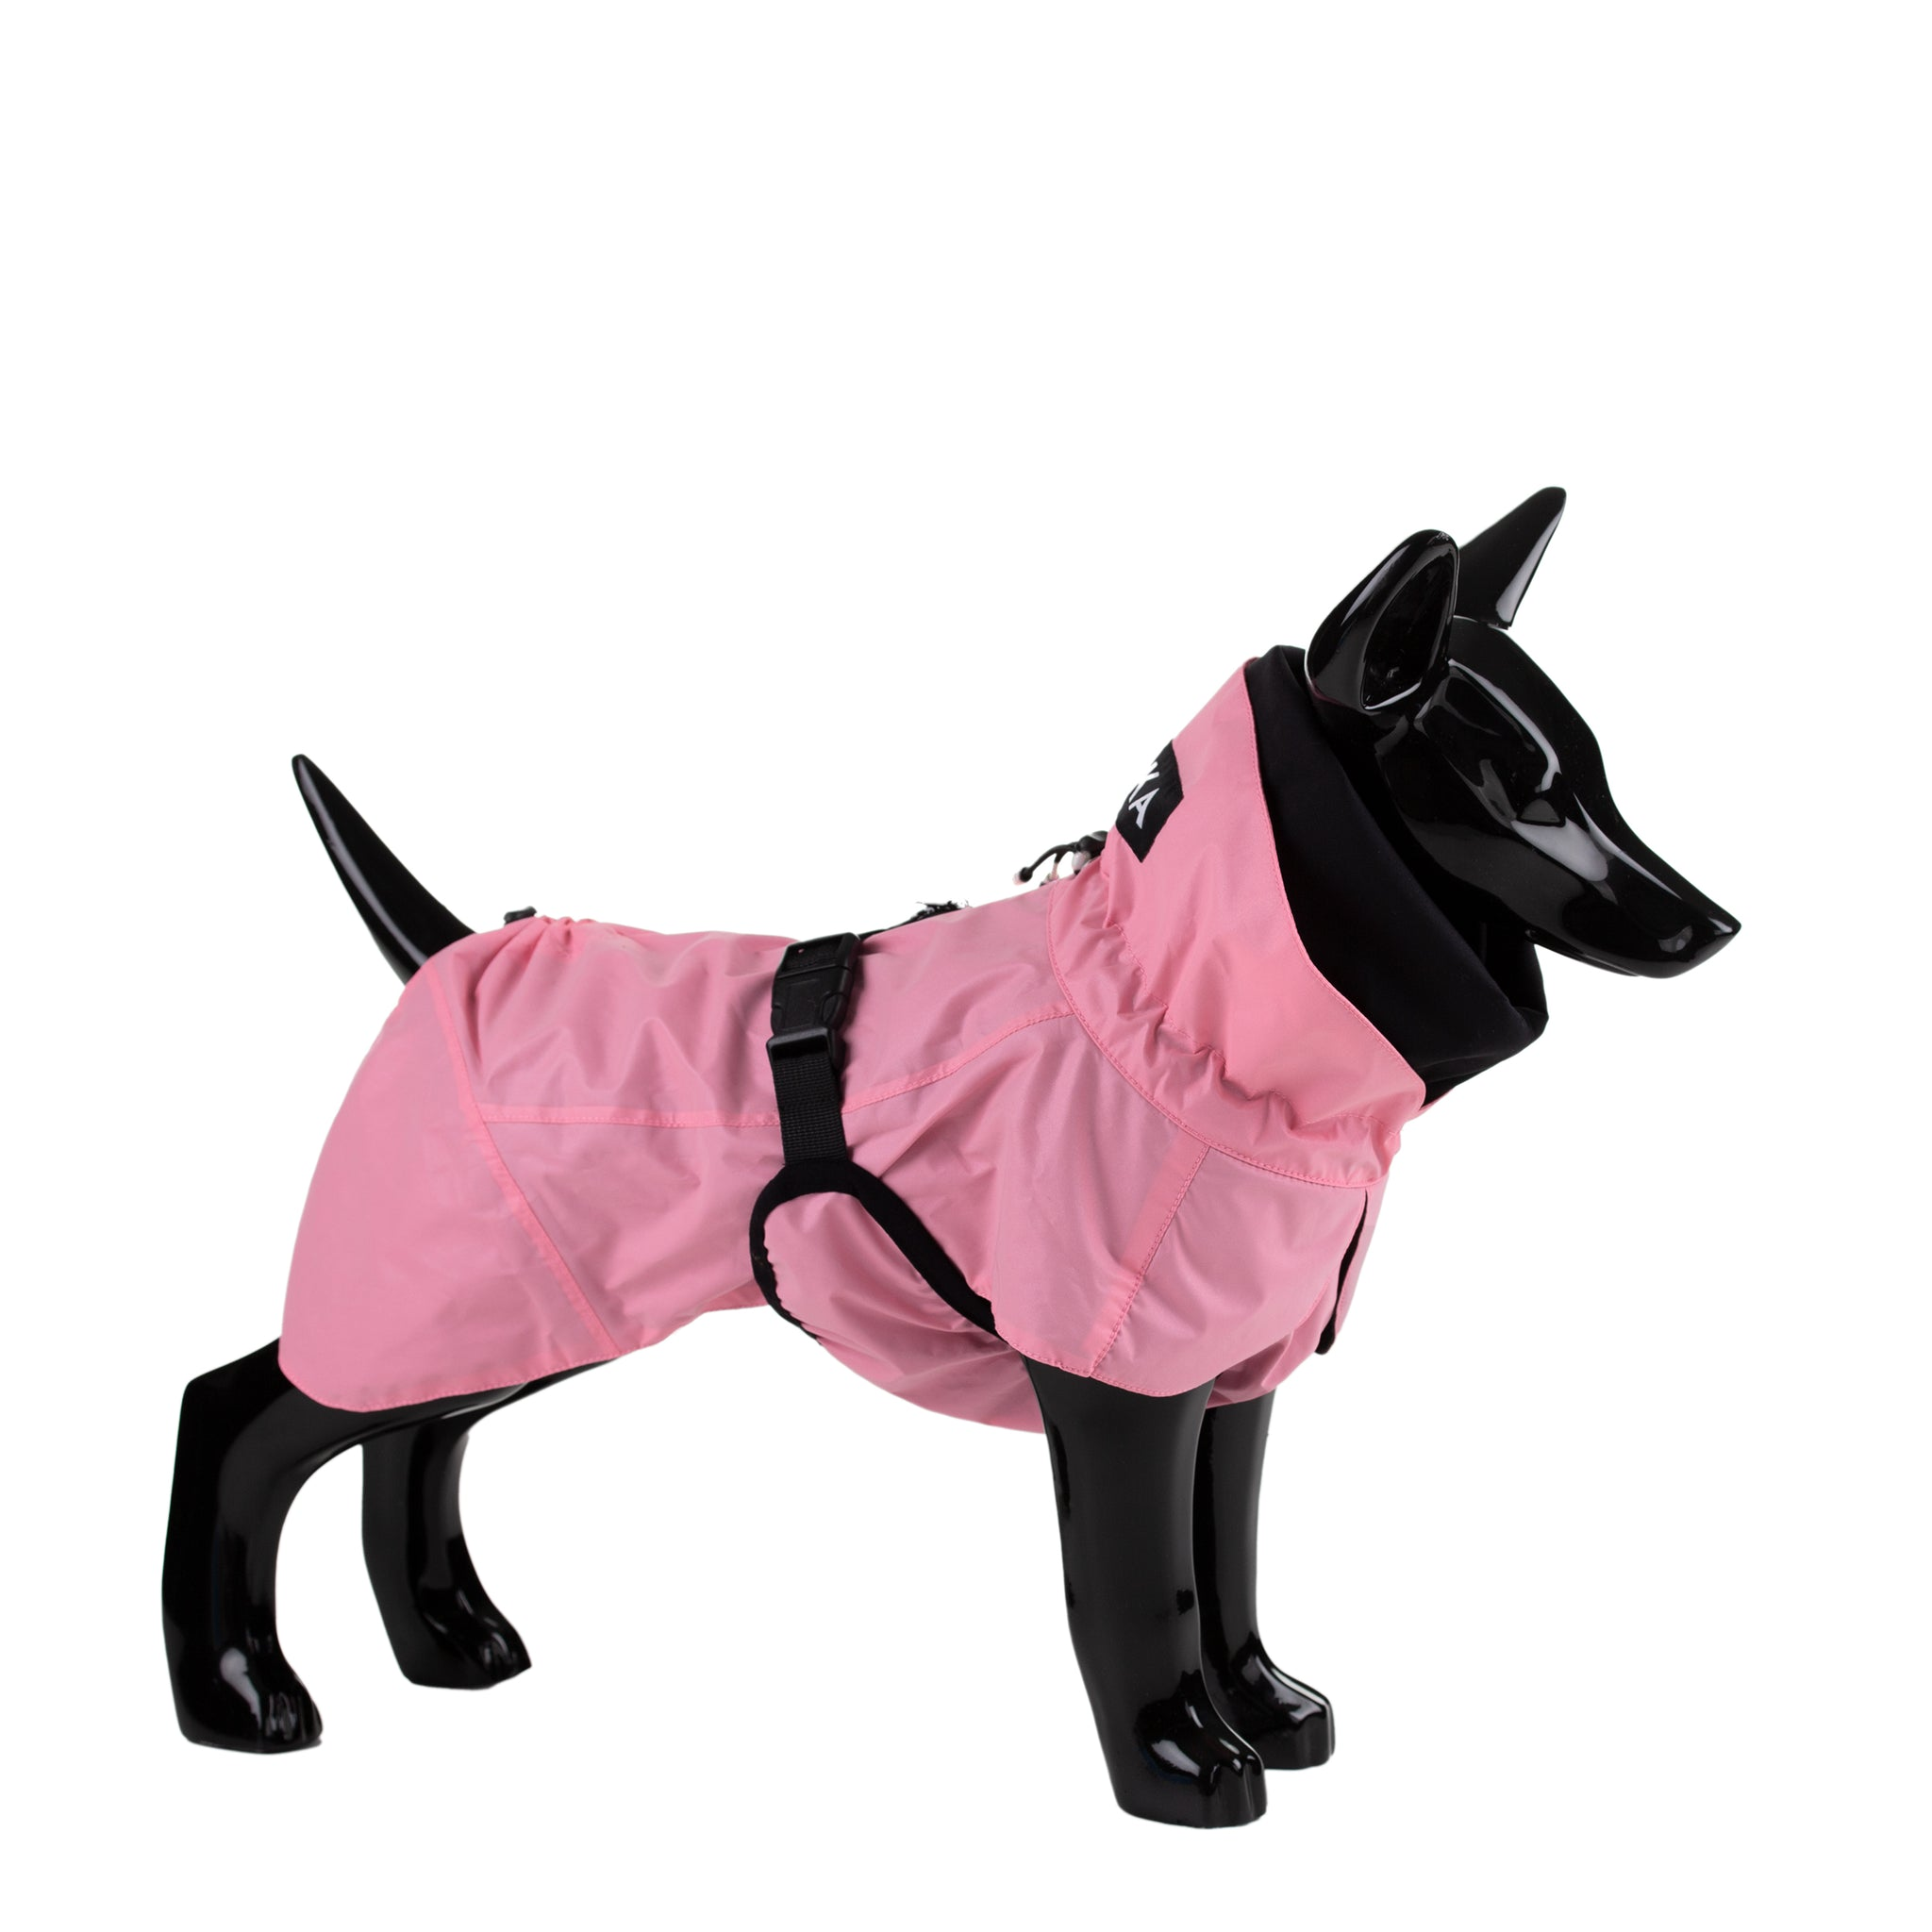 Visibility raincoat for dog